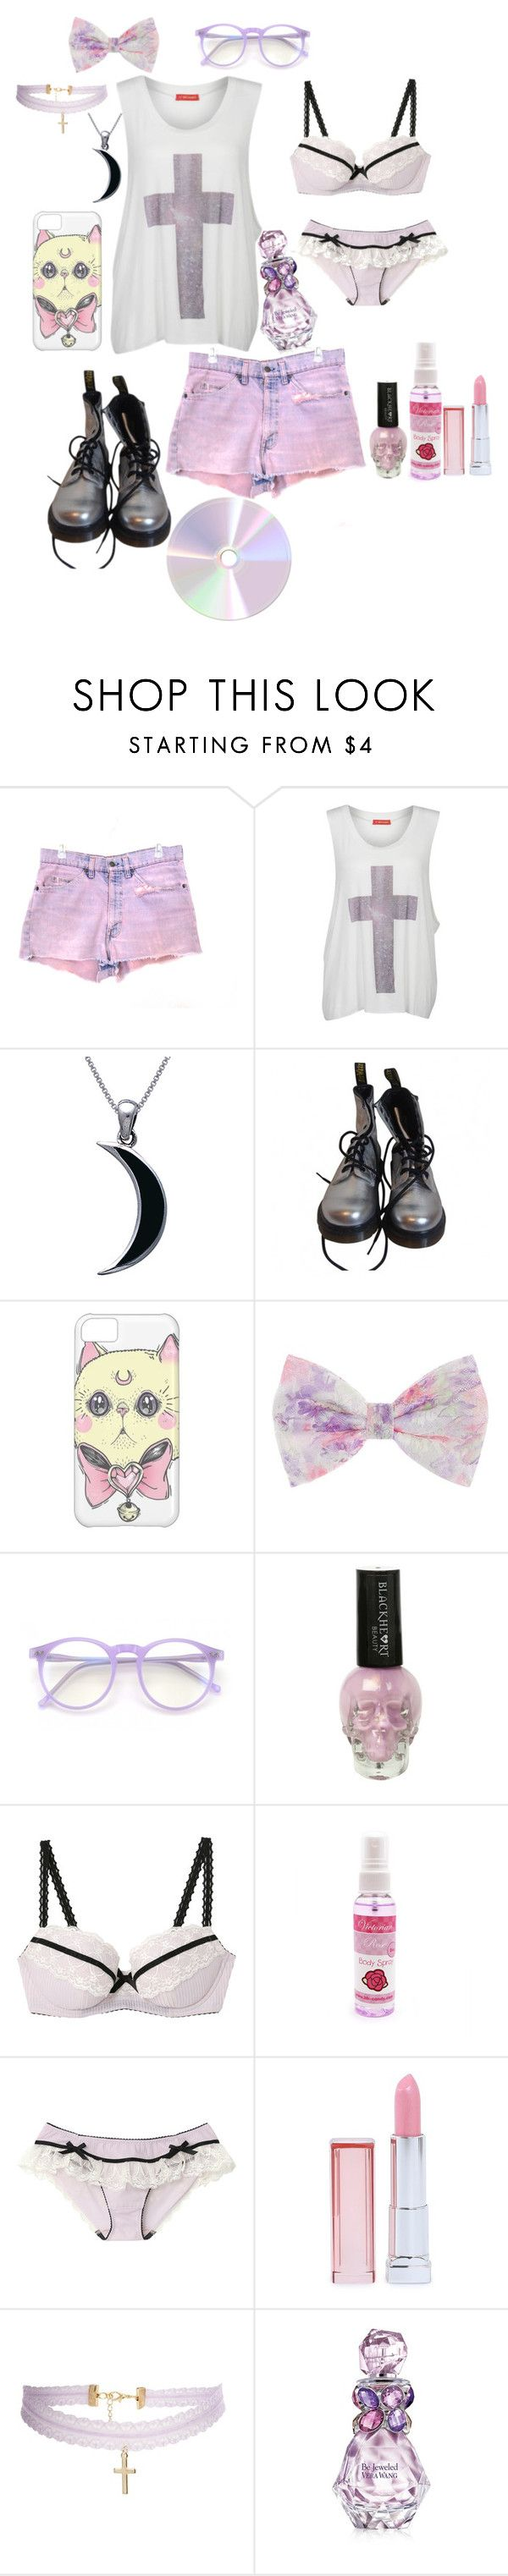 """pastel goth"" by red-foxess-and-wolf ❤ liked on Polyvore featuring Levi's, Influence, Carolina Glamour Collection, Dr. Martens, Wildfox, Maybelline, ASOS and Vera Wang"